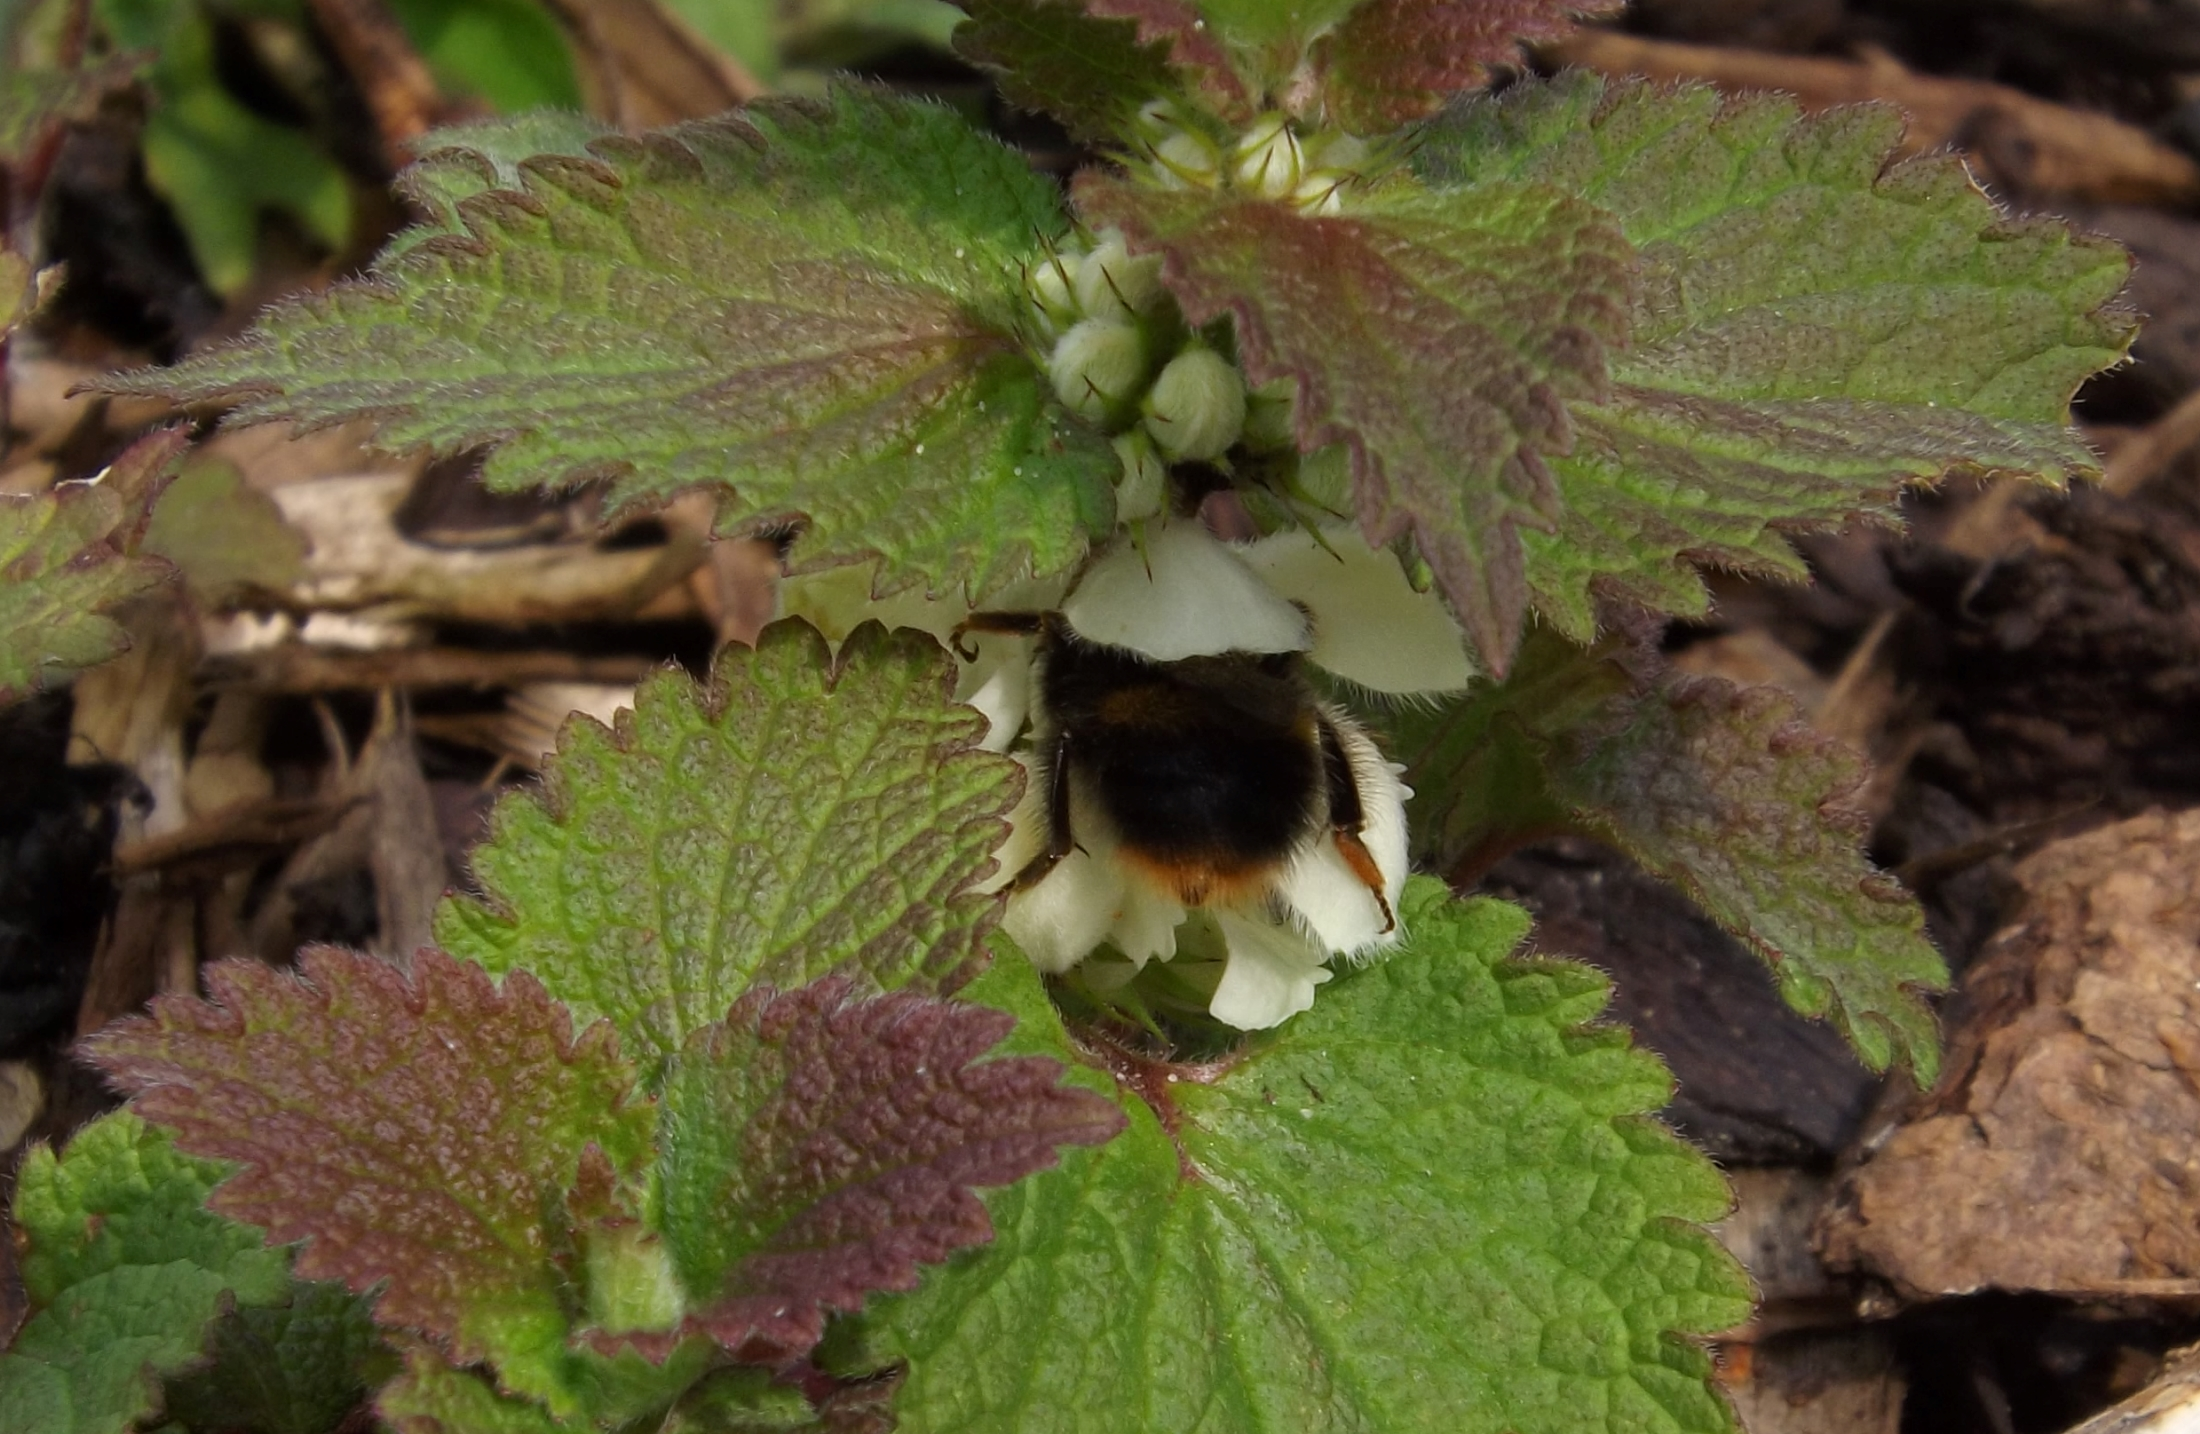 B. lapidarius (red tailed bumblebee) on white dead nettle in the wildlife bed